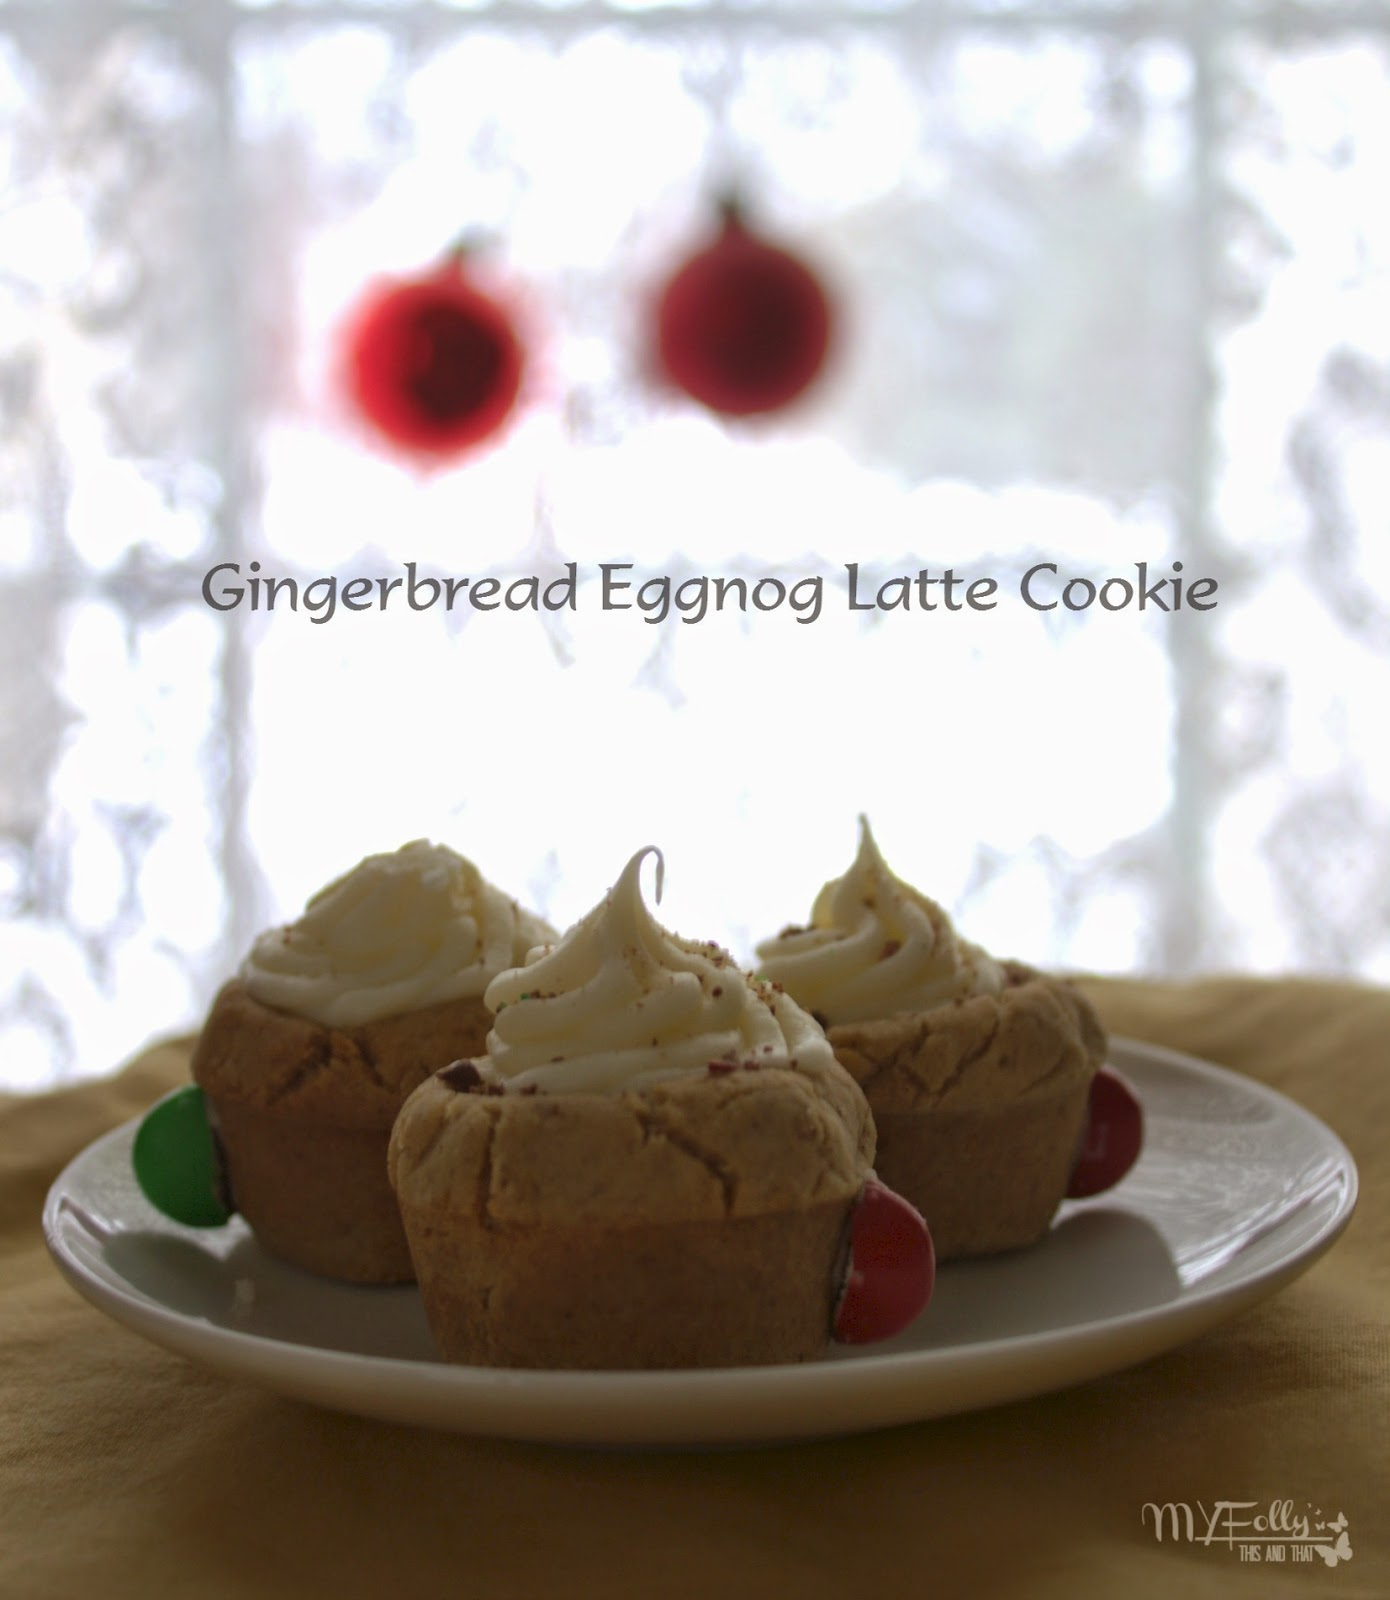 Gingerbread Eggnog Latte Cookies/ This and That   Fill the cookie jar, Cookies, Gingerbread, Torani Syrup, Eggnog